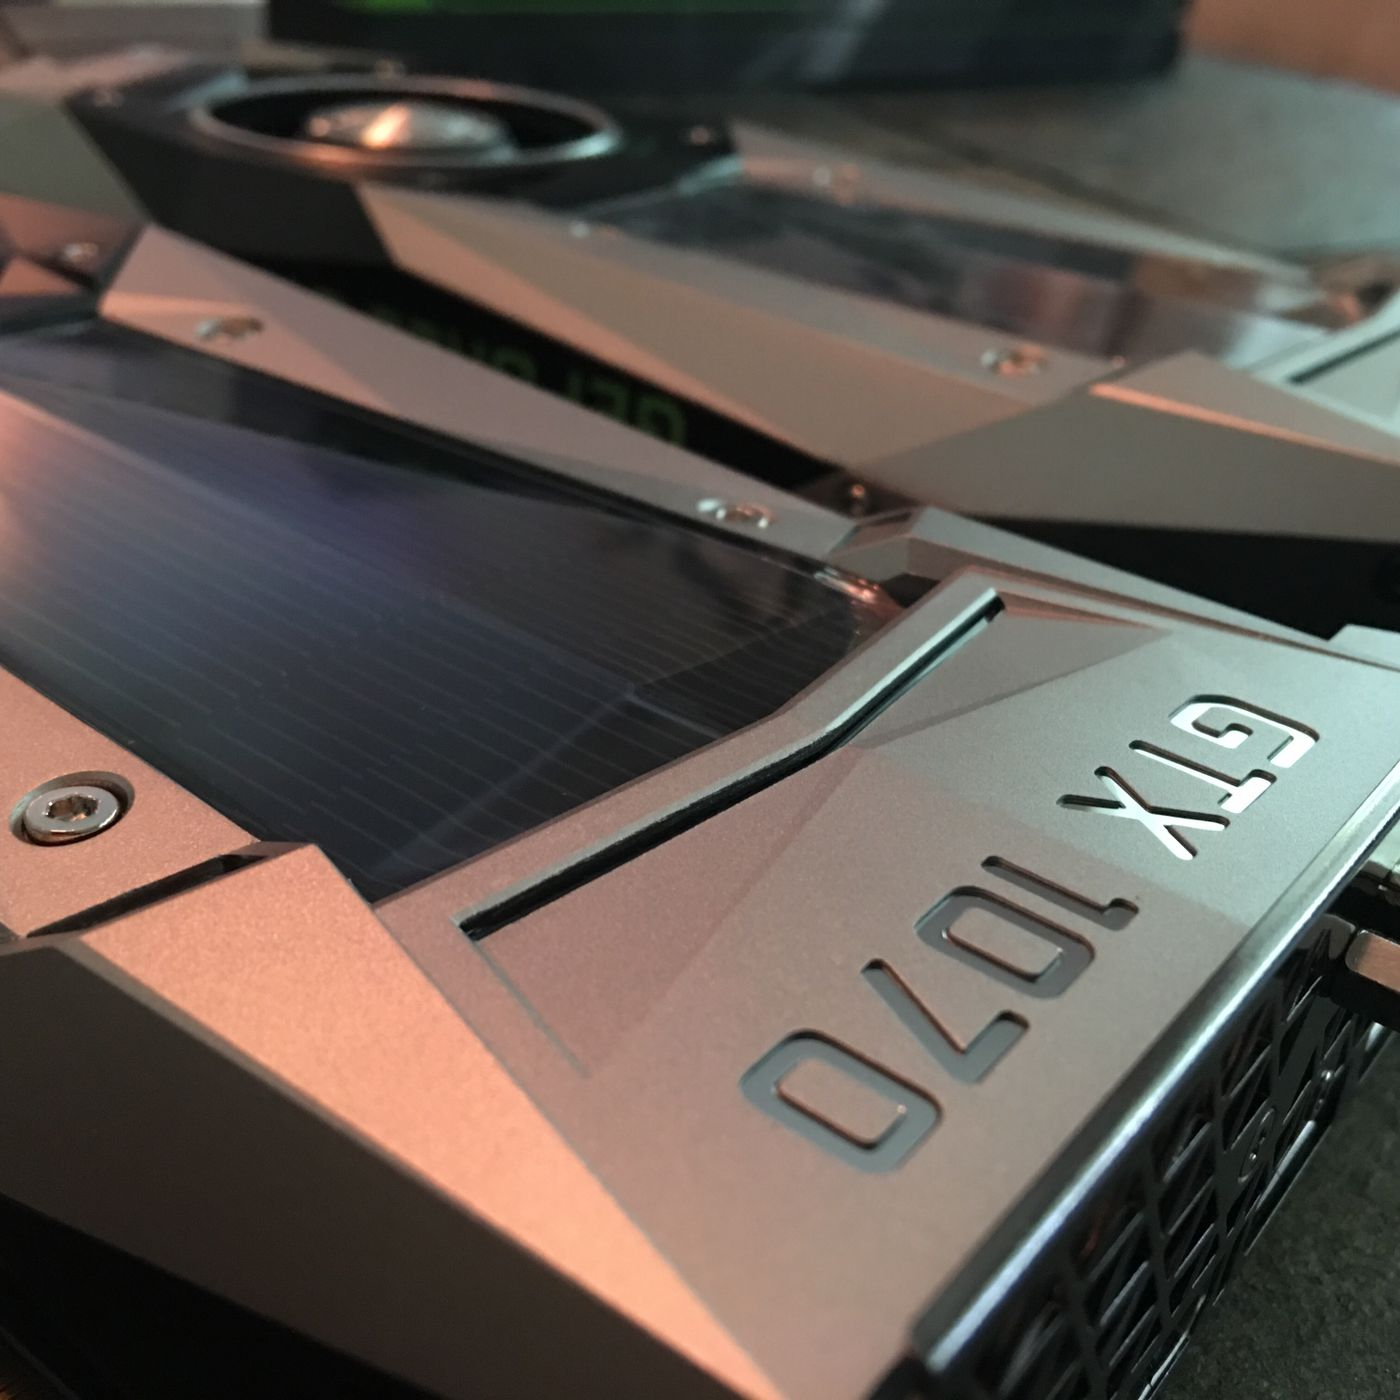 GeForce GTX 1070: This is the graphics card you've been